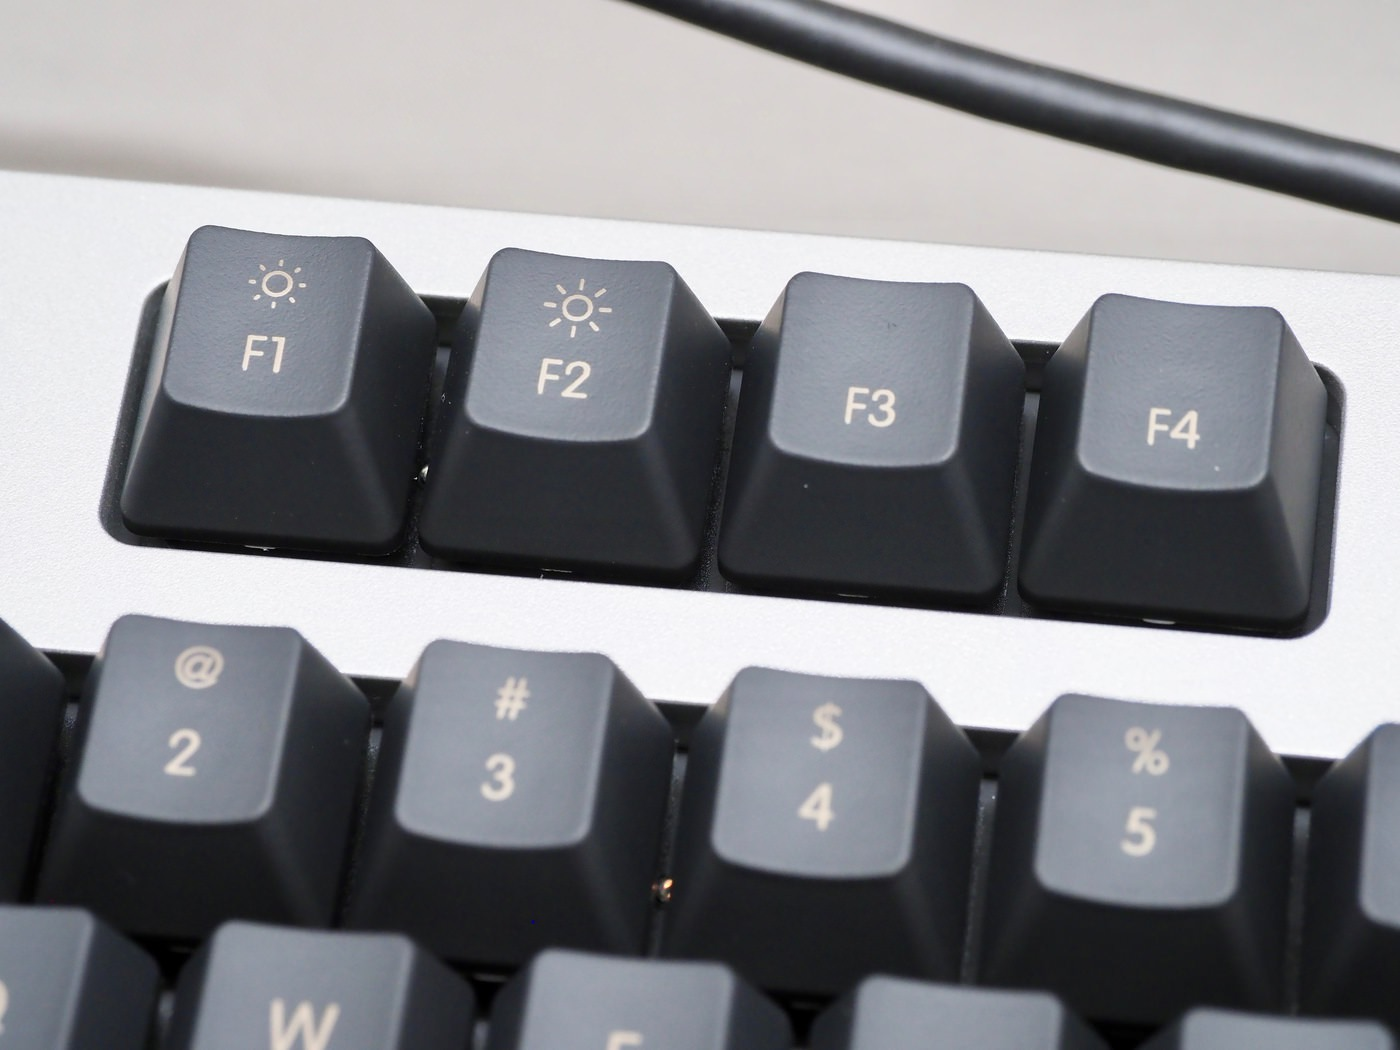 realforce-tkl-for-mac-pfu-limited-edition-review_00019